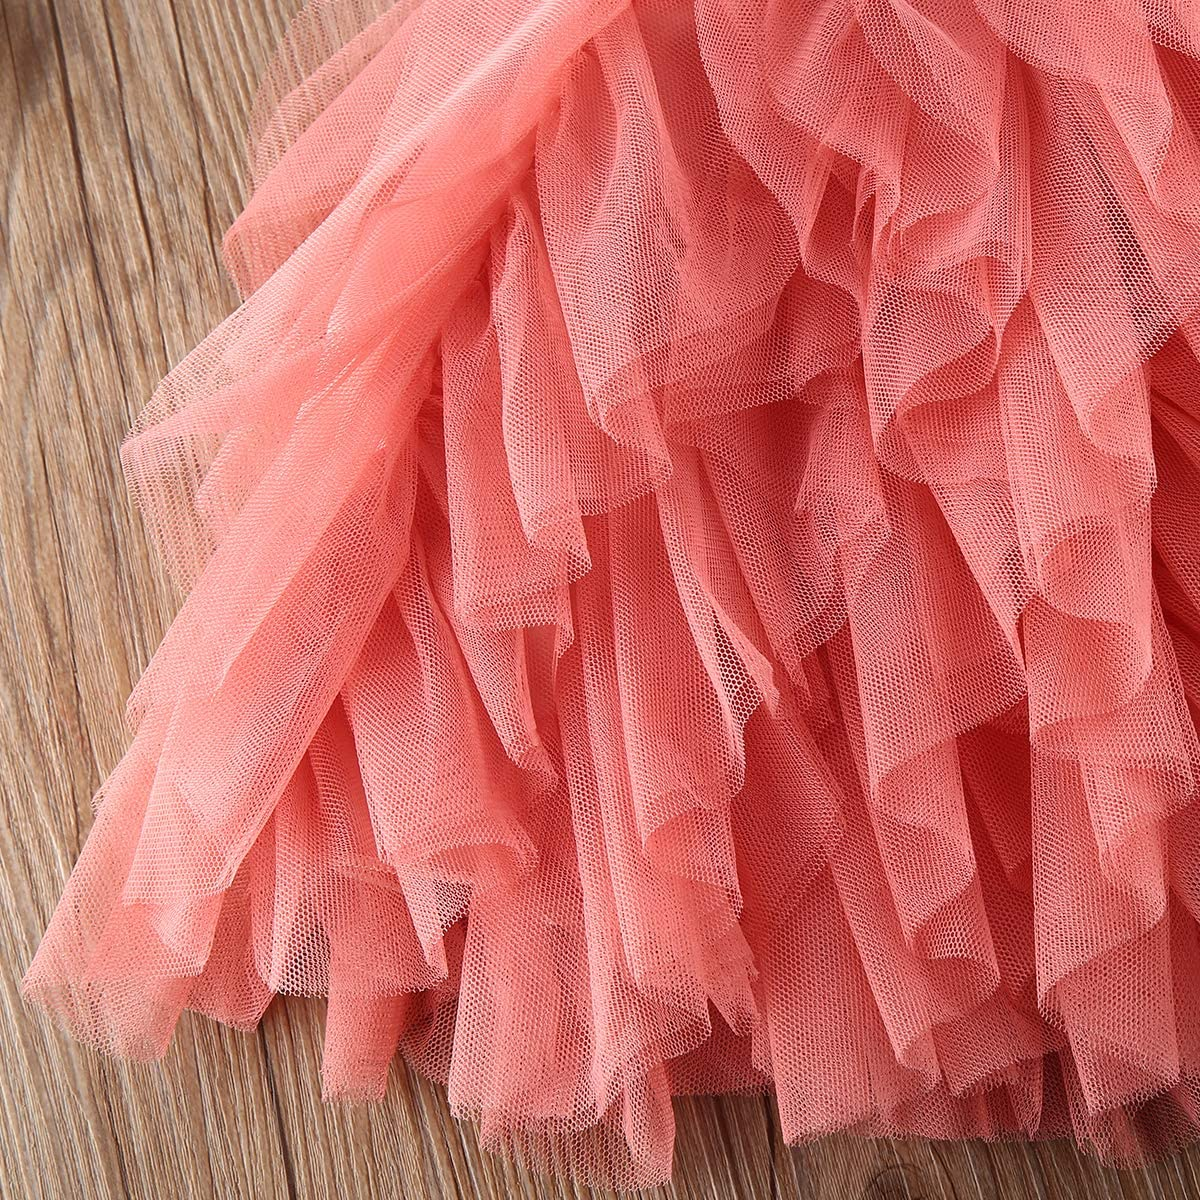 Toddler Girls Floral Lace Ruffle Hem Shirt Hollow Out Bell Sleeve Tops Mesh Tutu Skirt Infant Tulle Sundress for Party